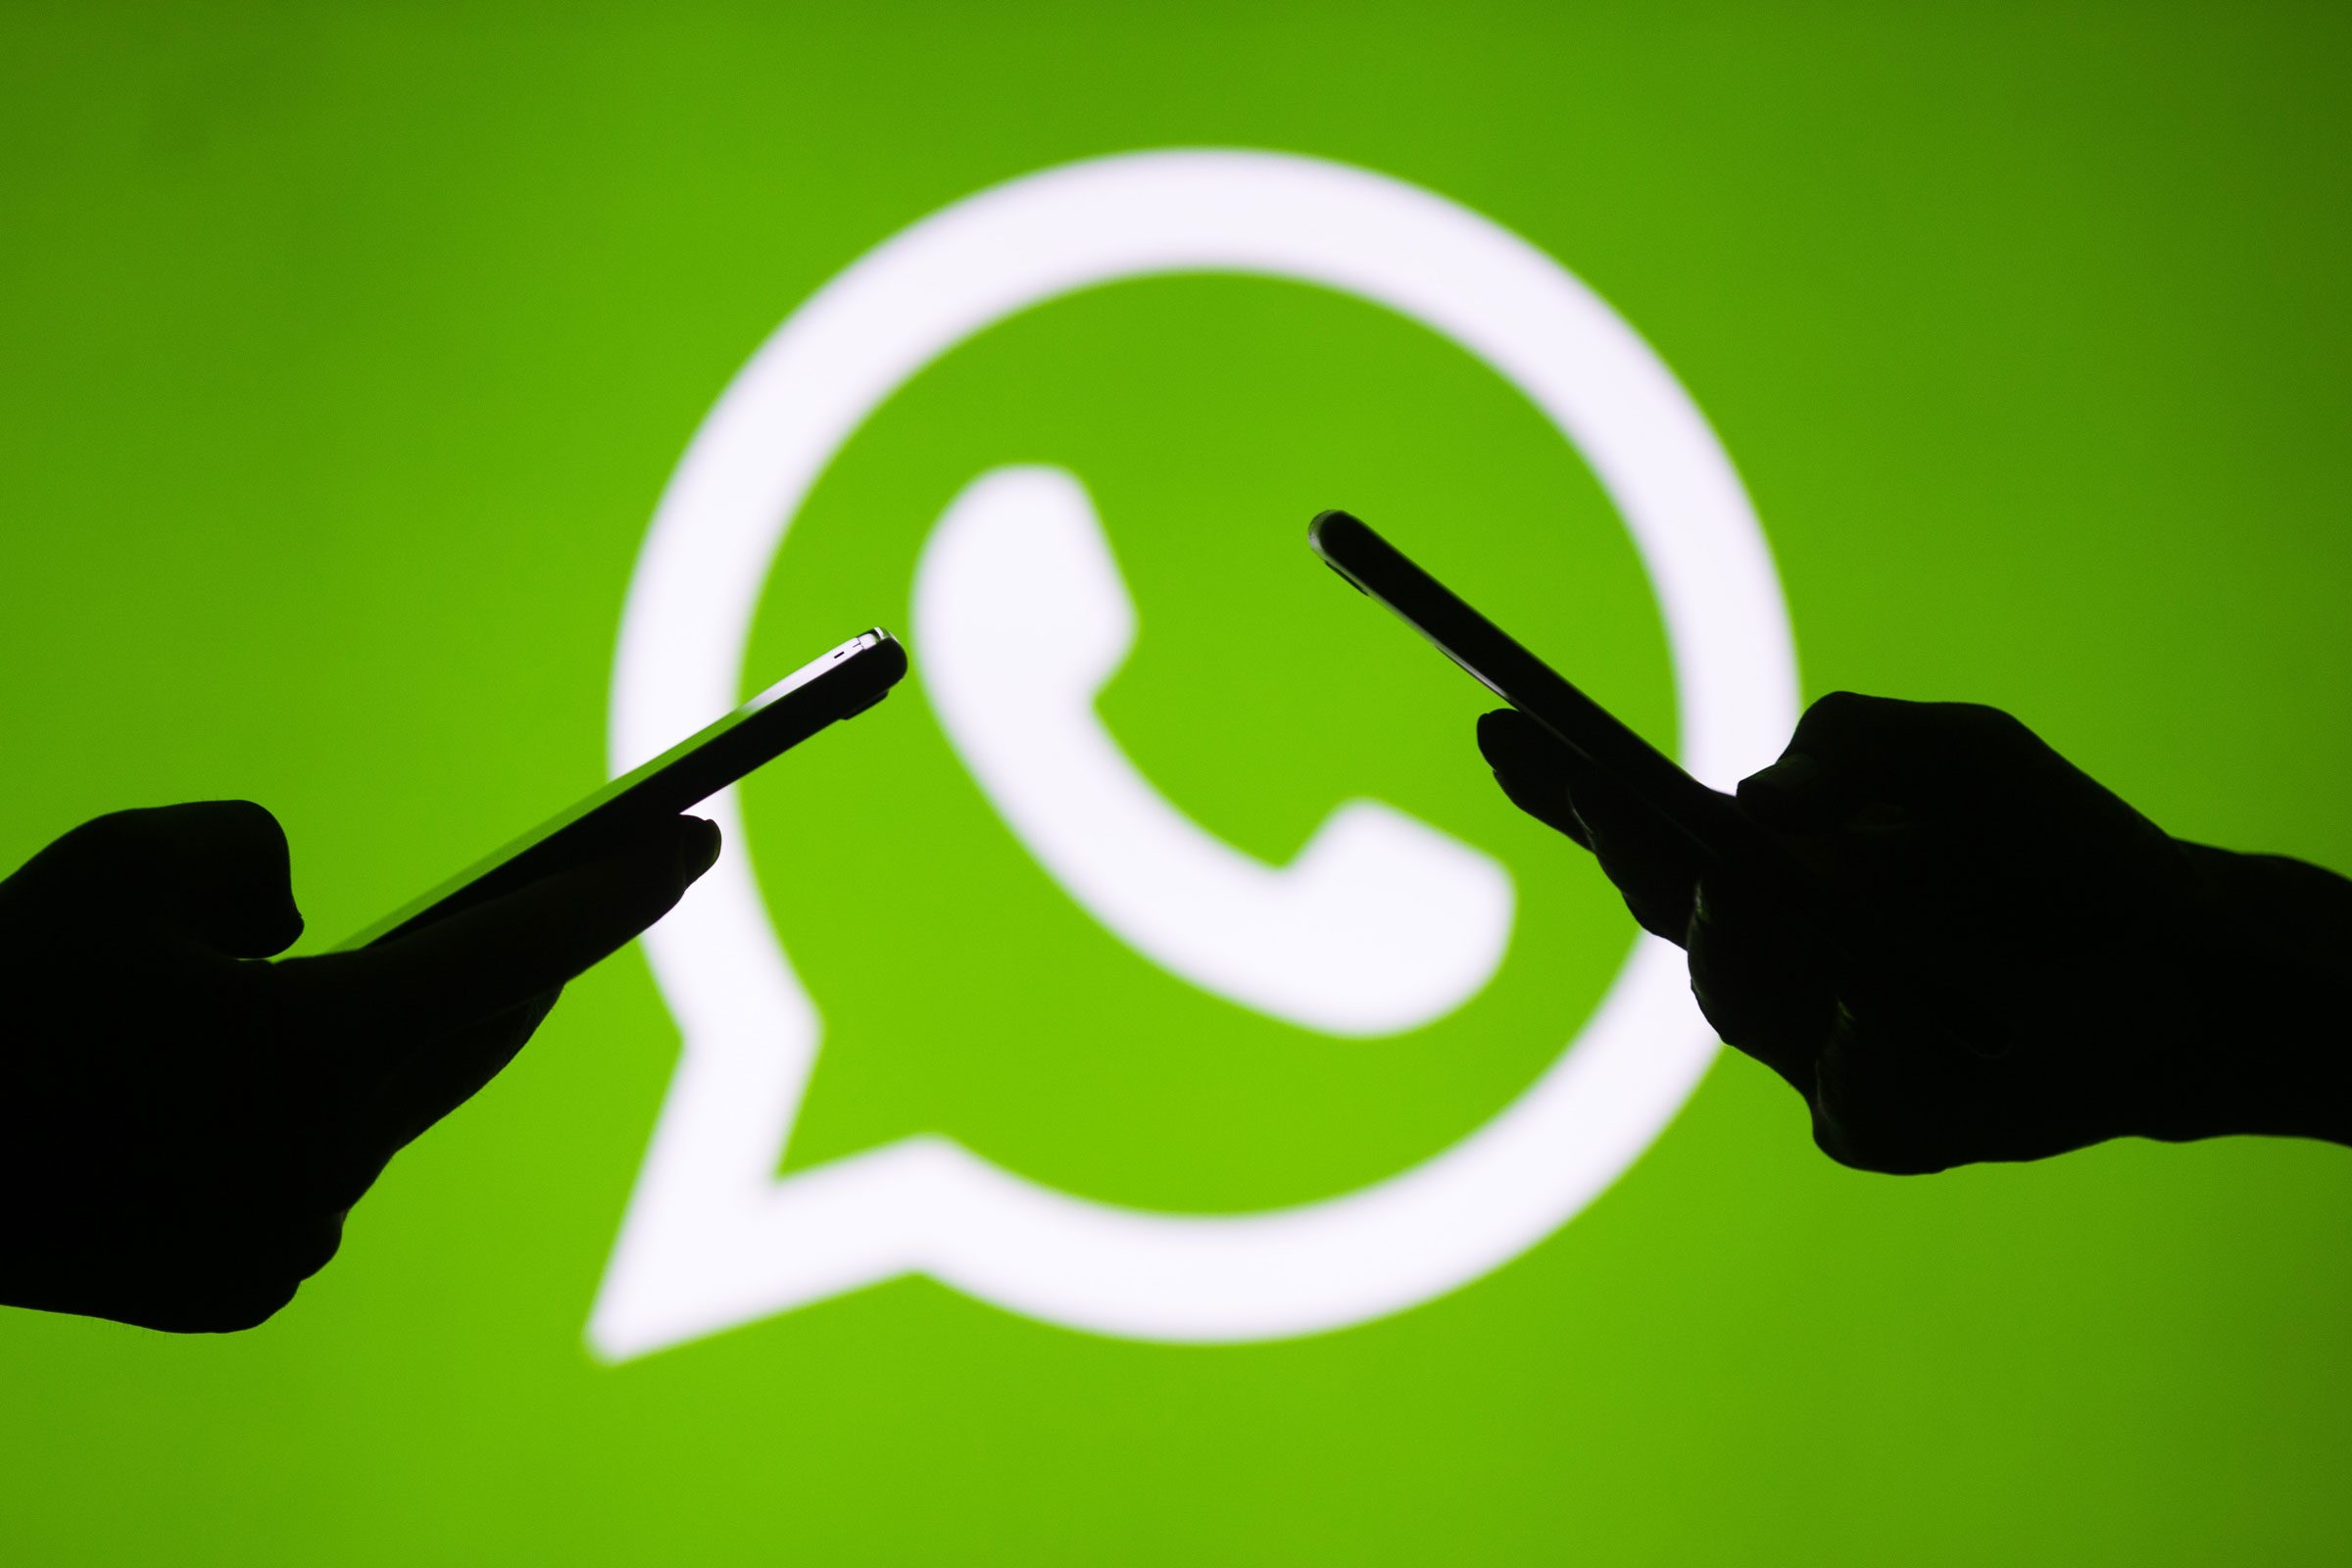 silhouettes of hands use WhatsApp with the logo in the background